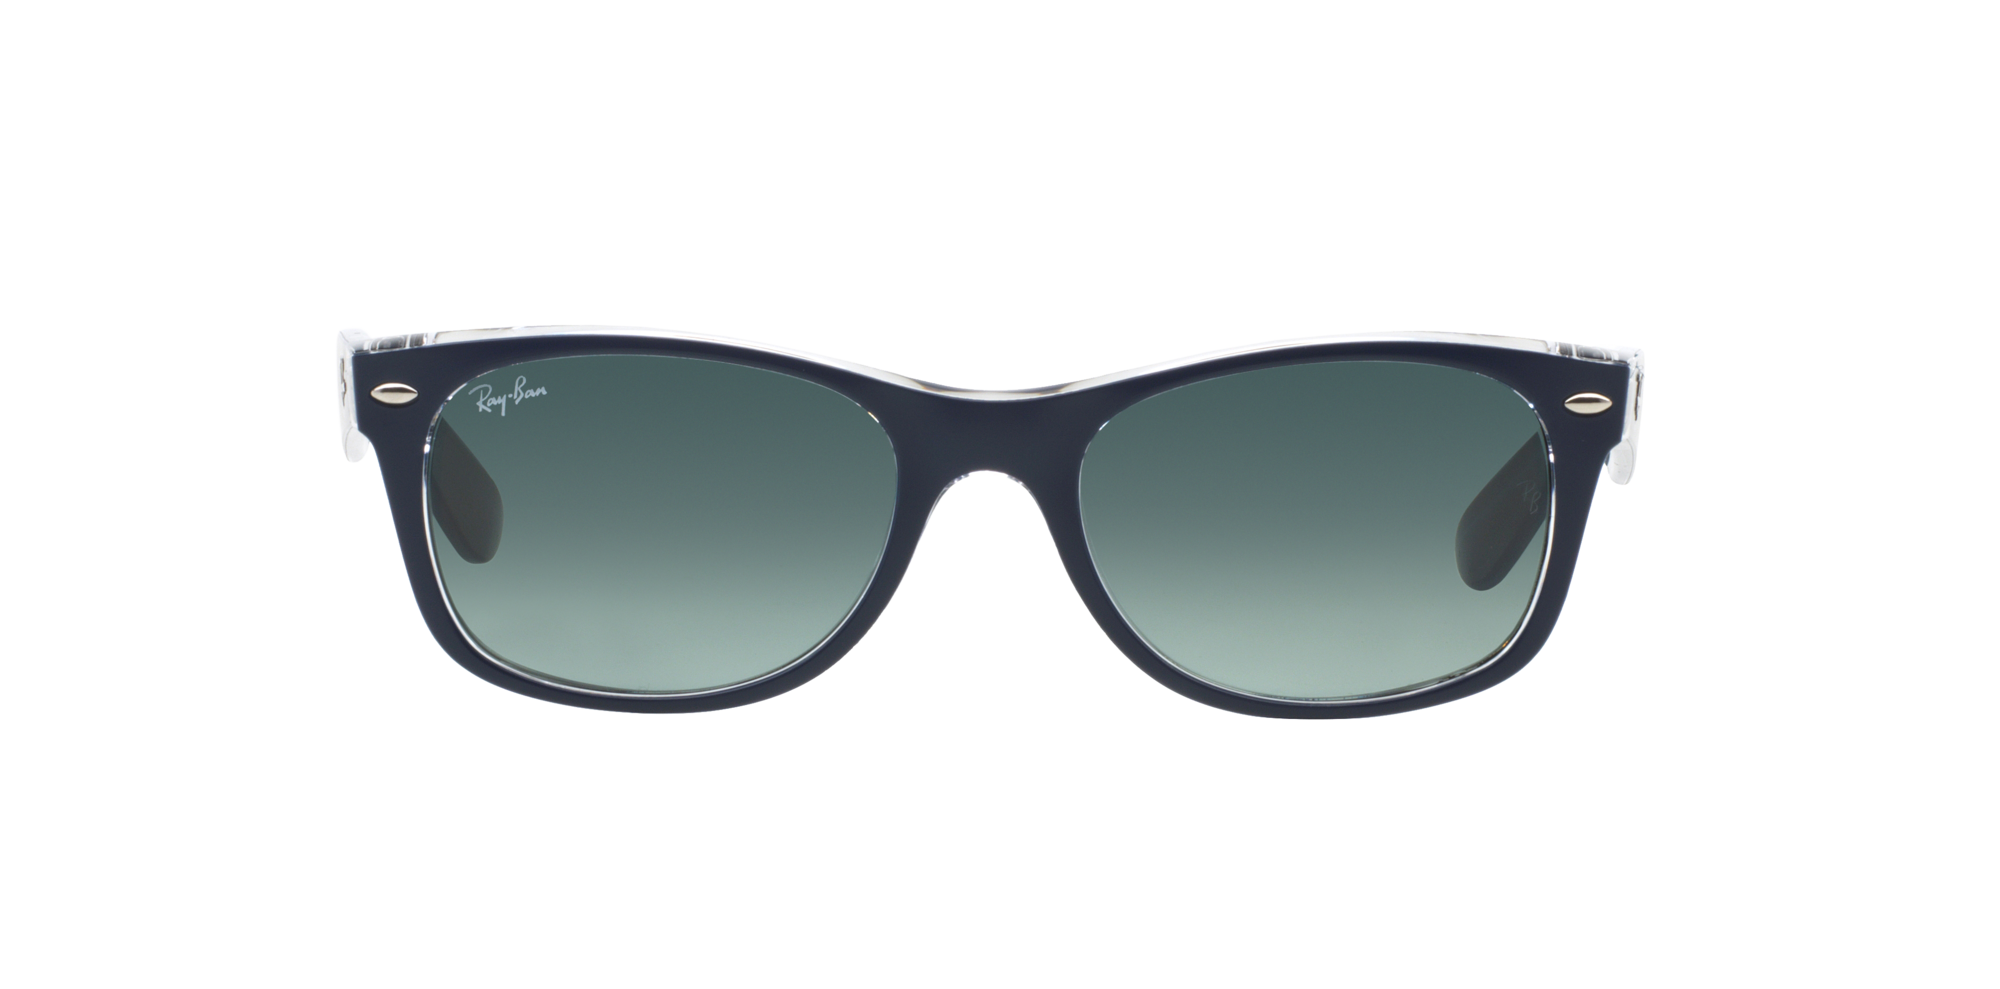 RAY-BAN NEW WAYFARER RB 2132 605371-360